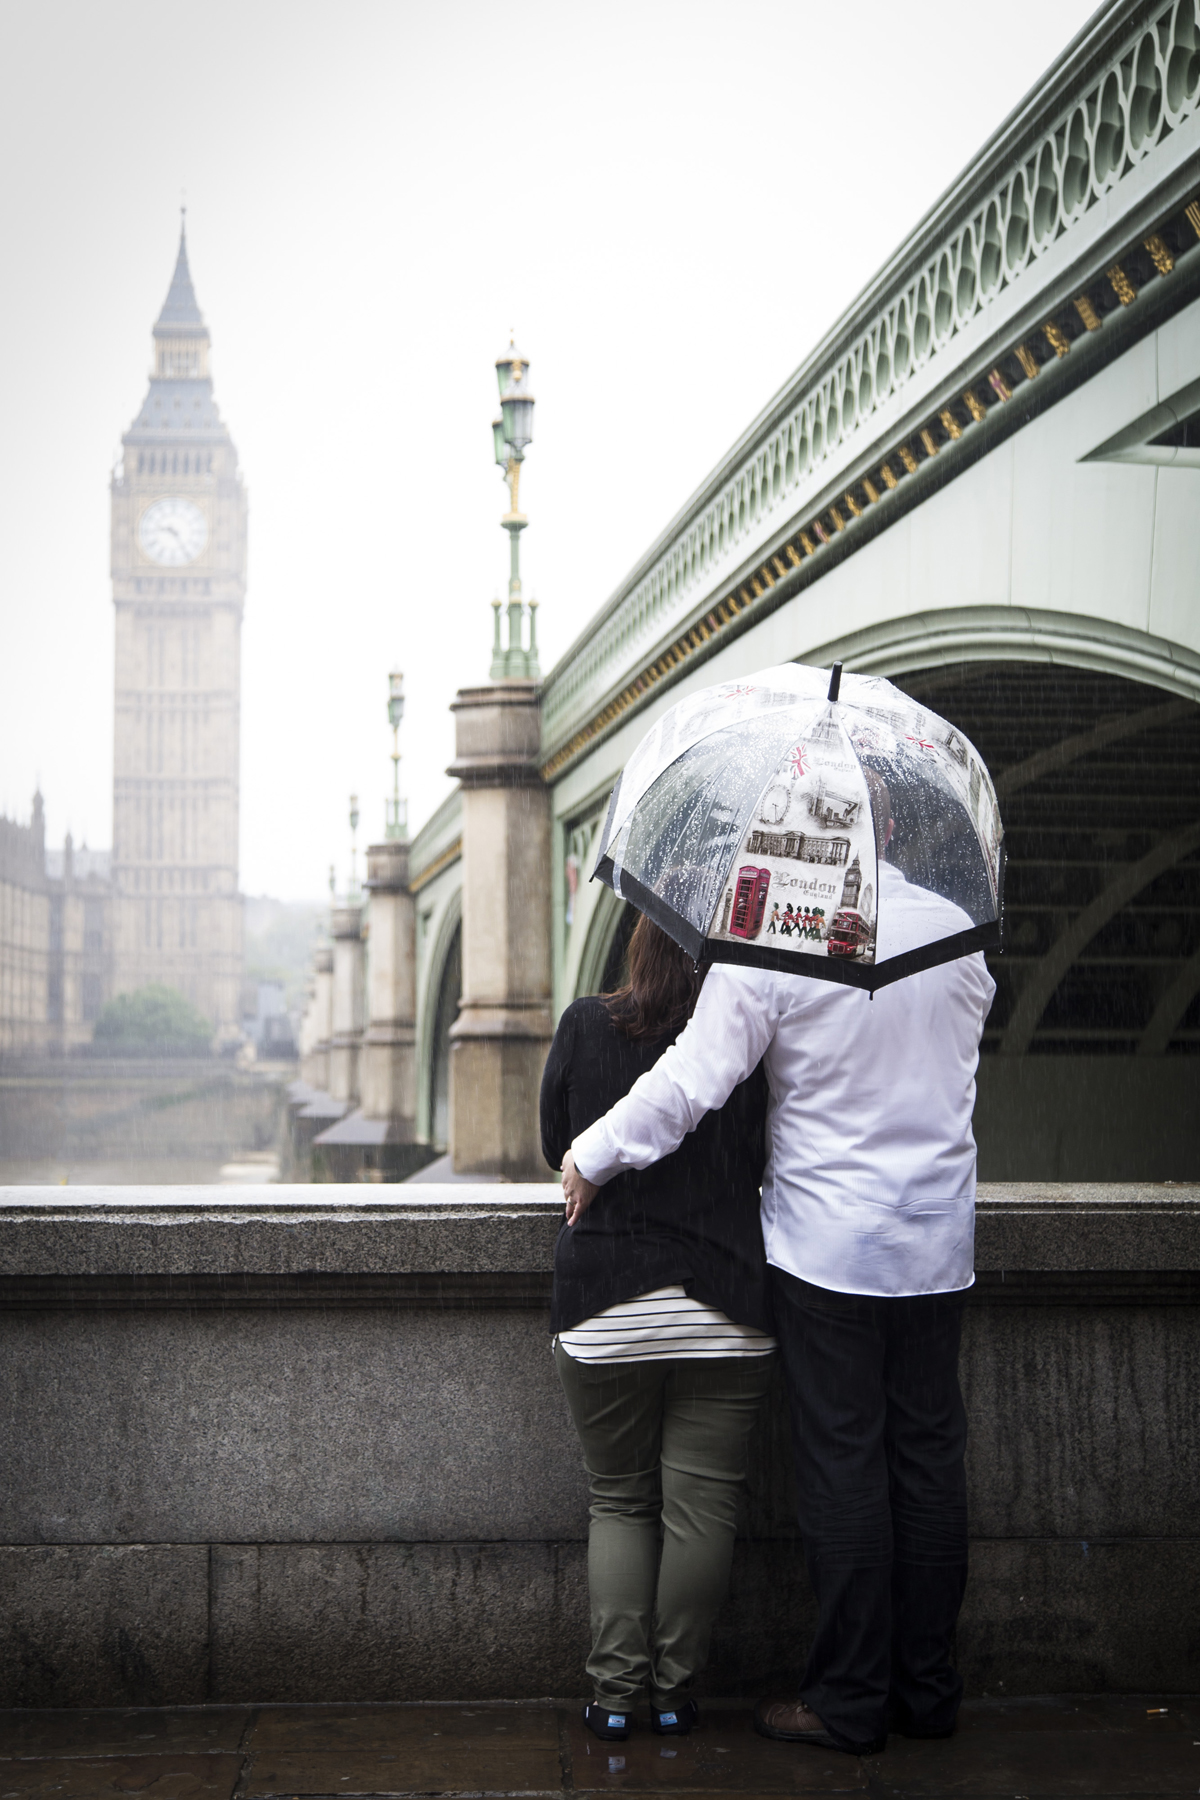 Couple portrait, Big Ben, rain, umbrella, Westminster, London photo portrait